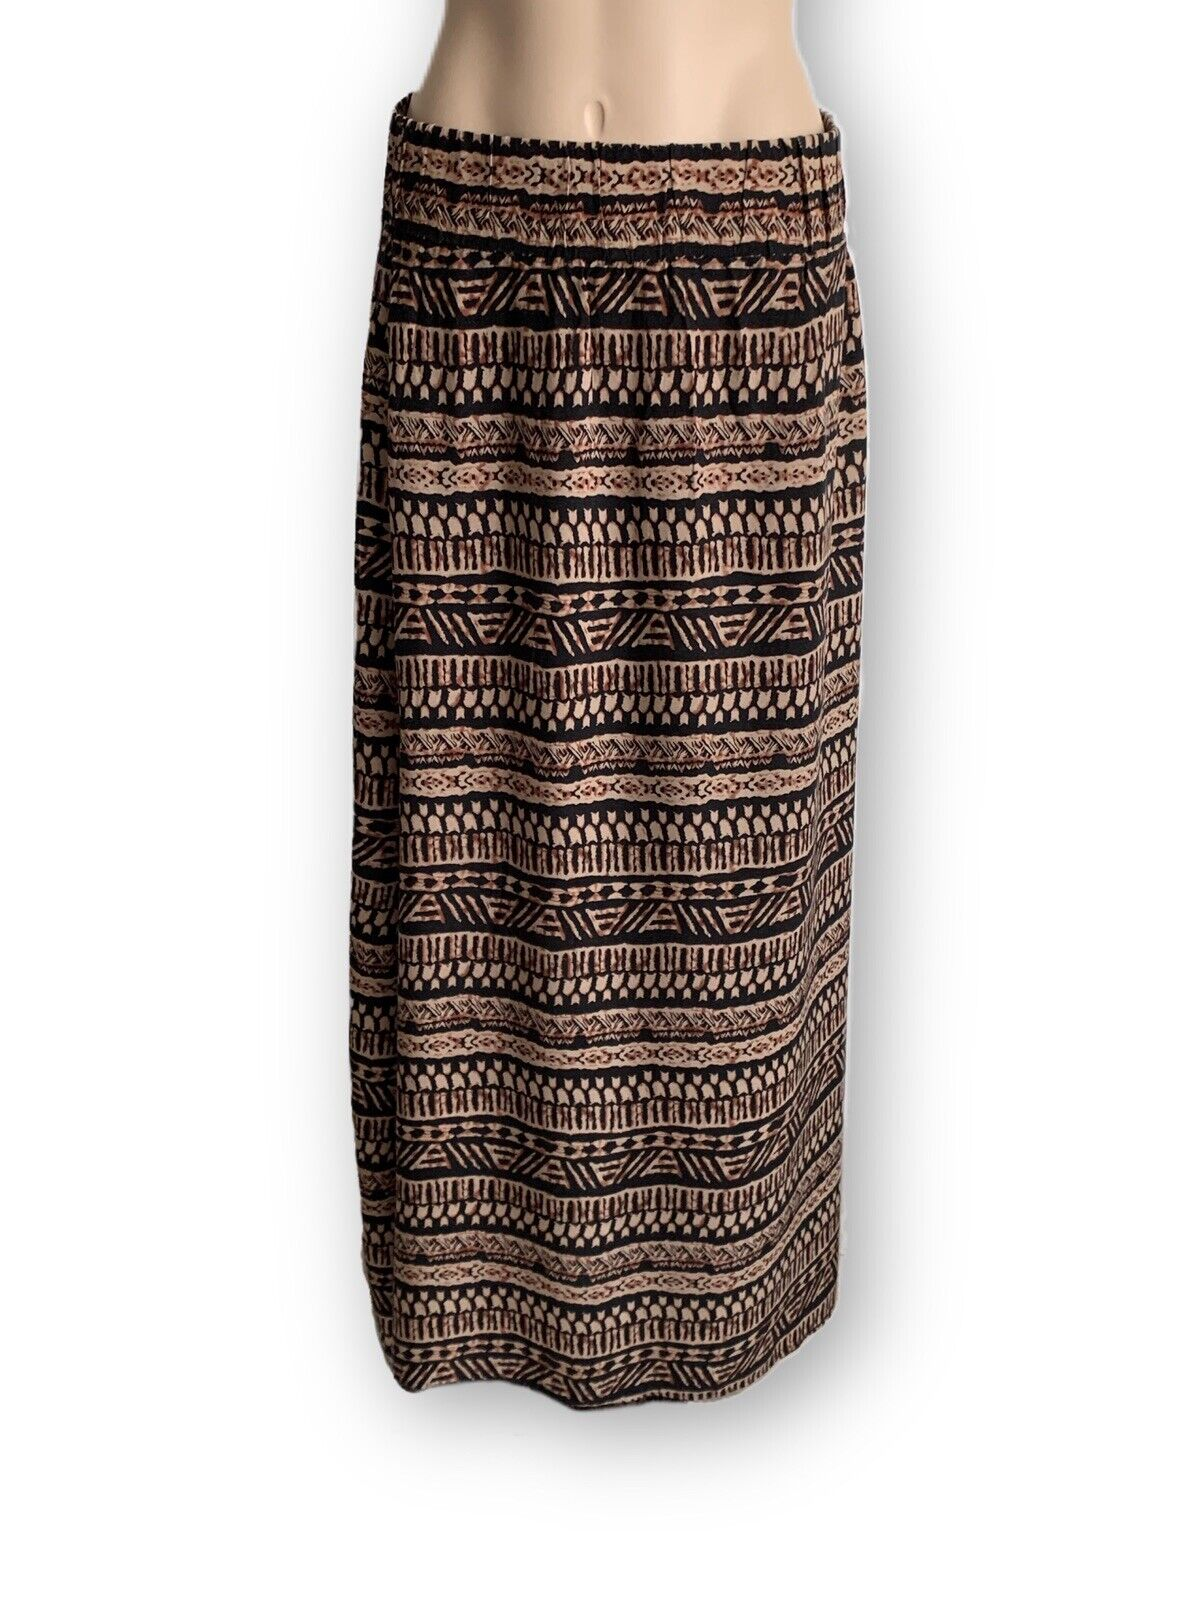 Maxi SKIRT Skirt Ladies Patterned Size 38 Blind Date